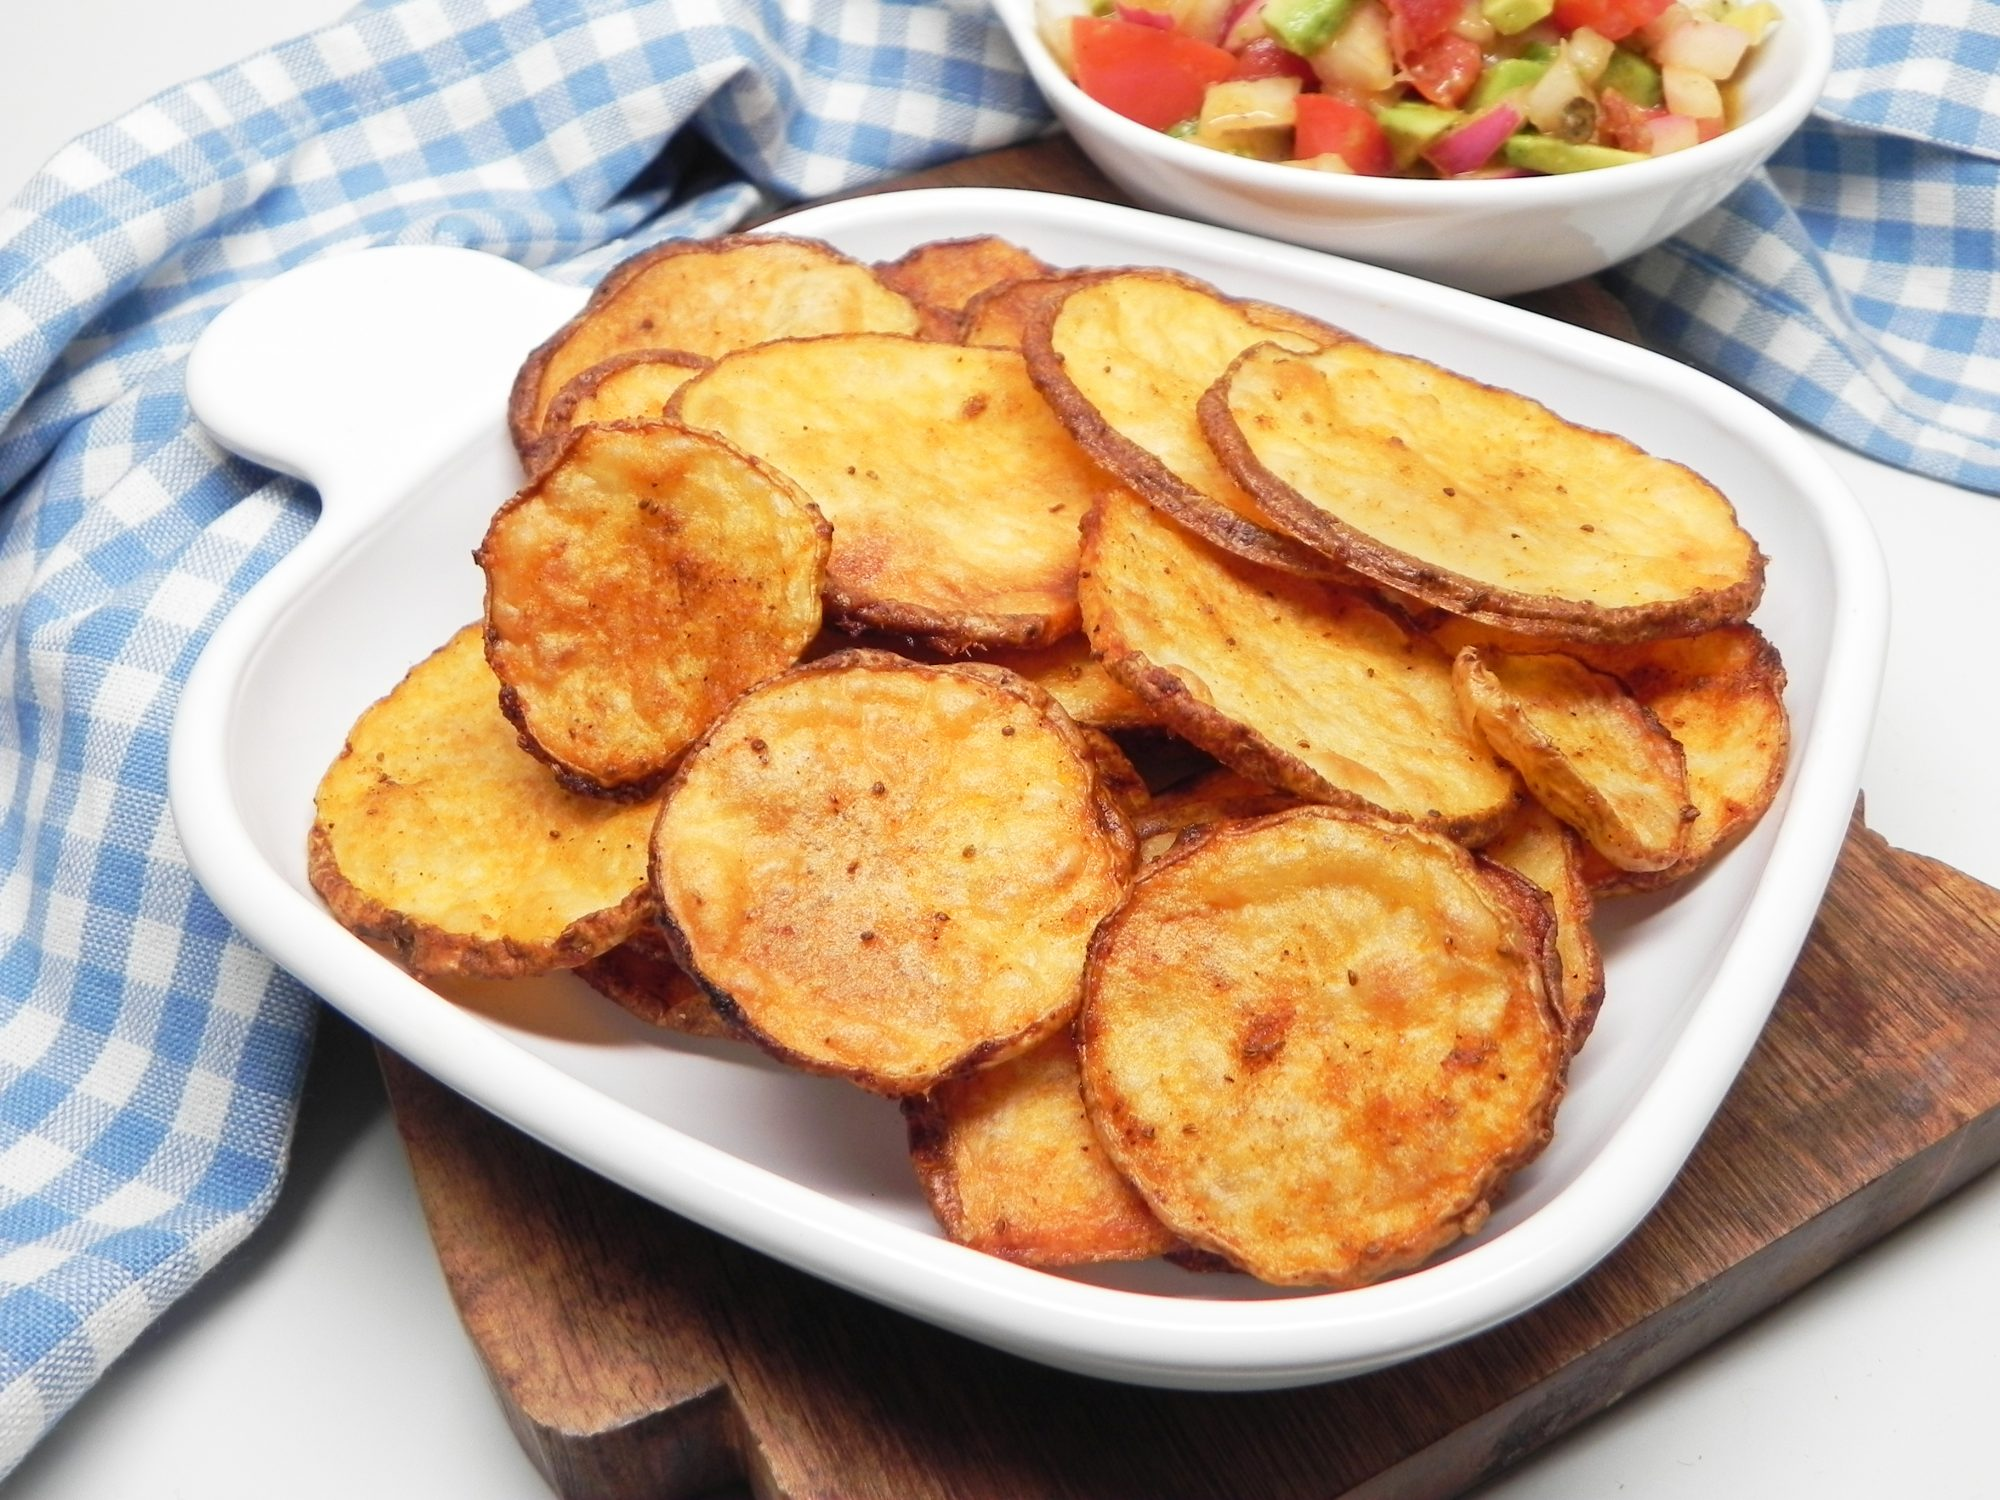 dish of oven-baked potato slices